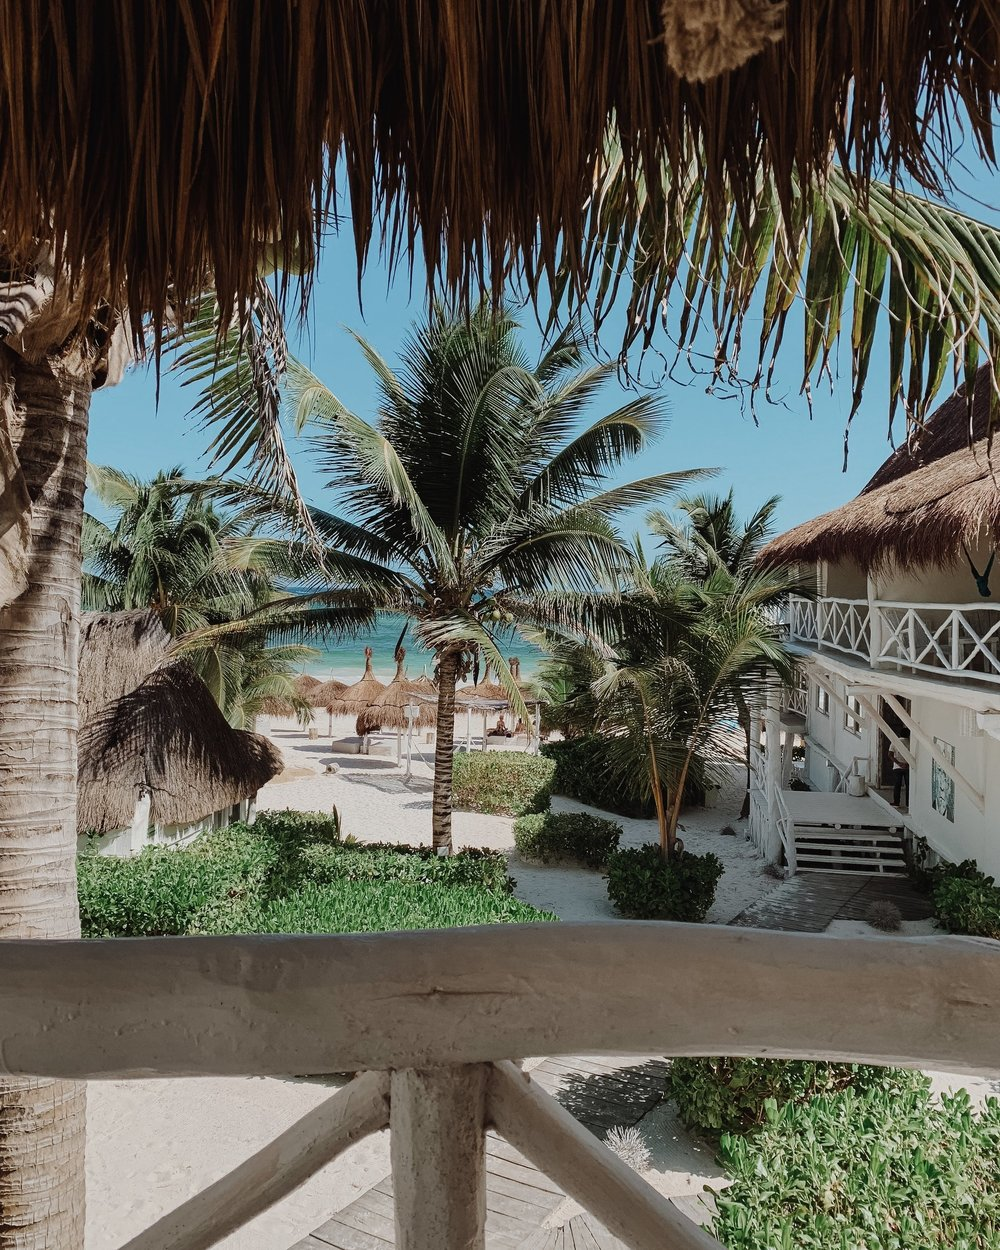 Where to stay in Tulum: Coco Limited